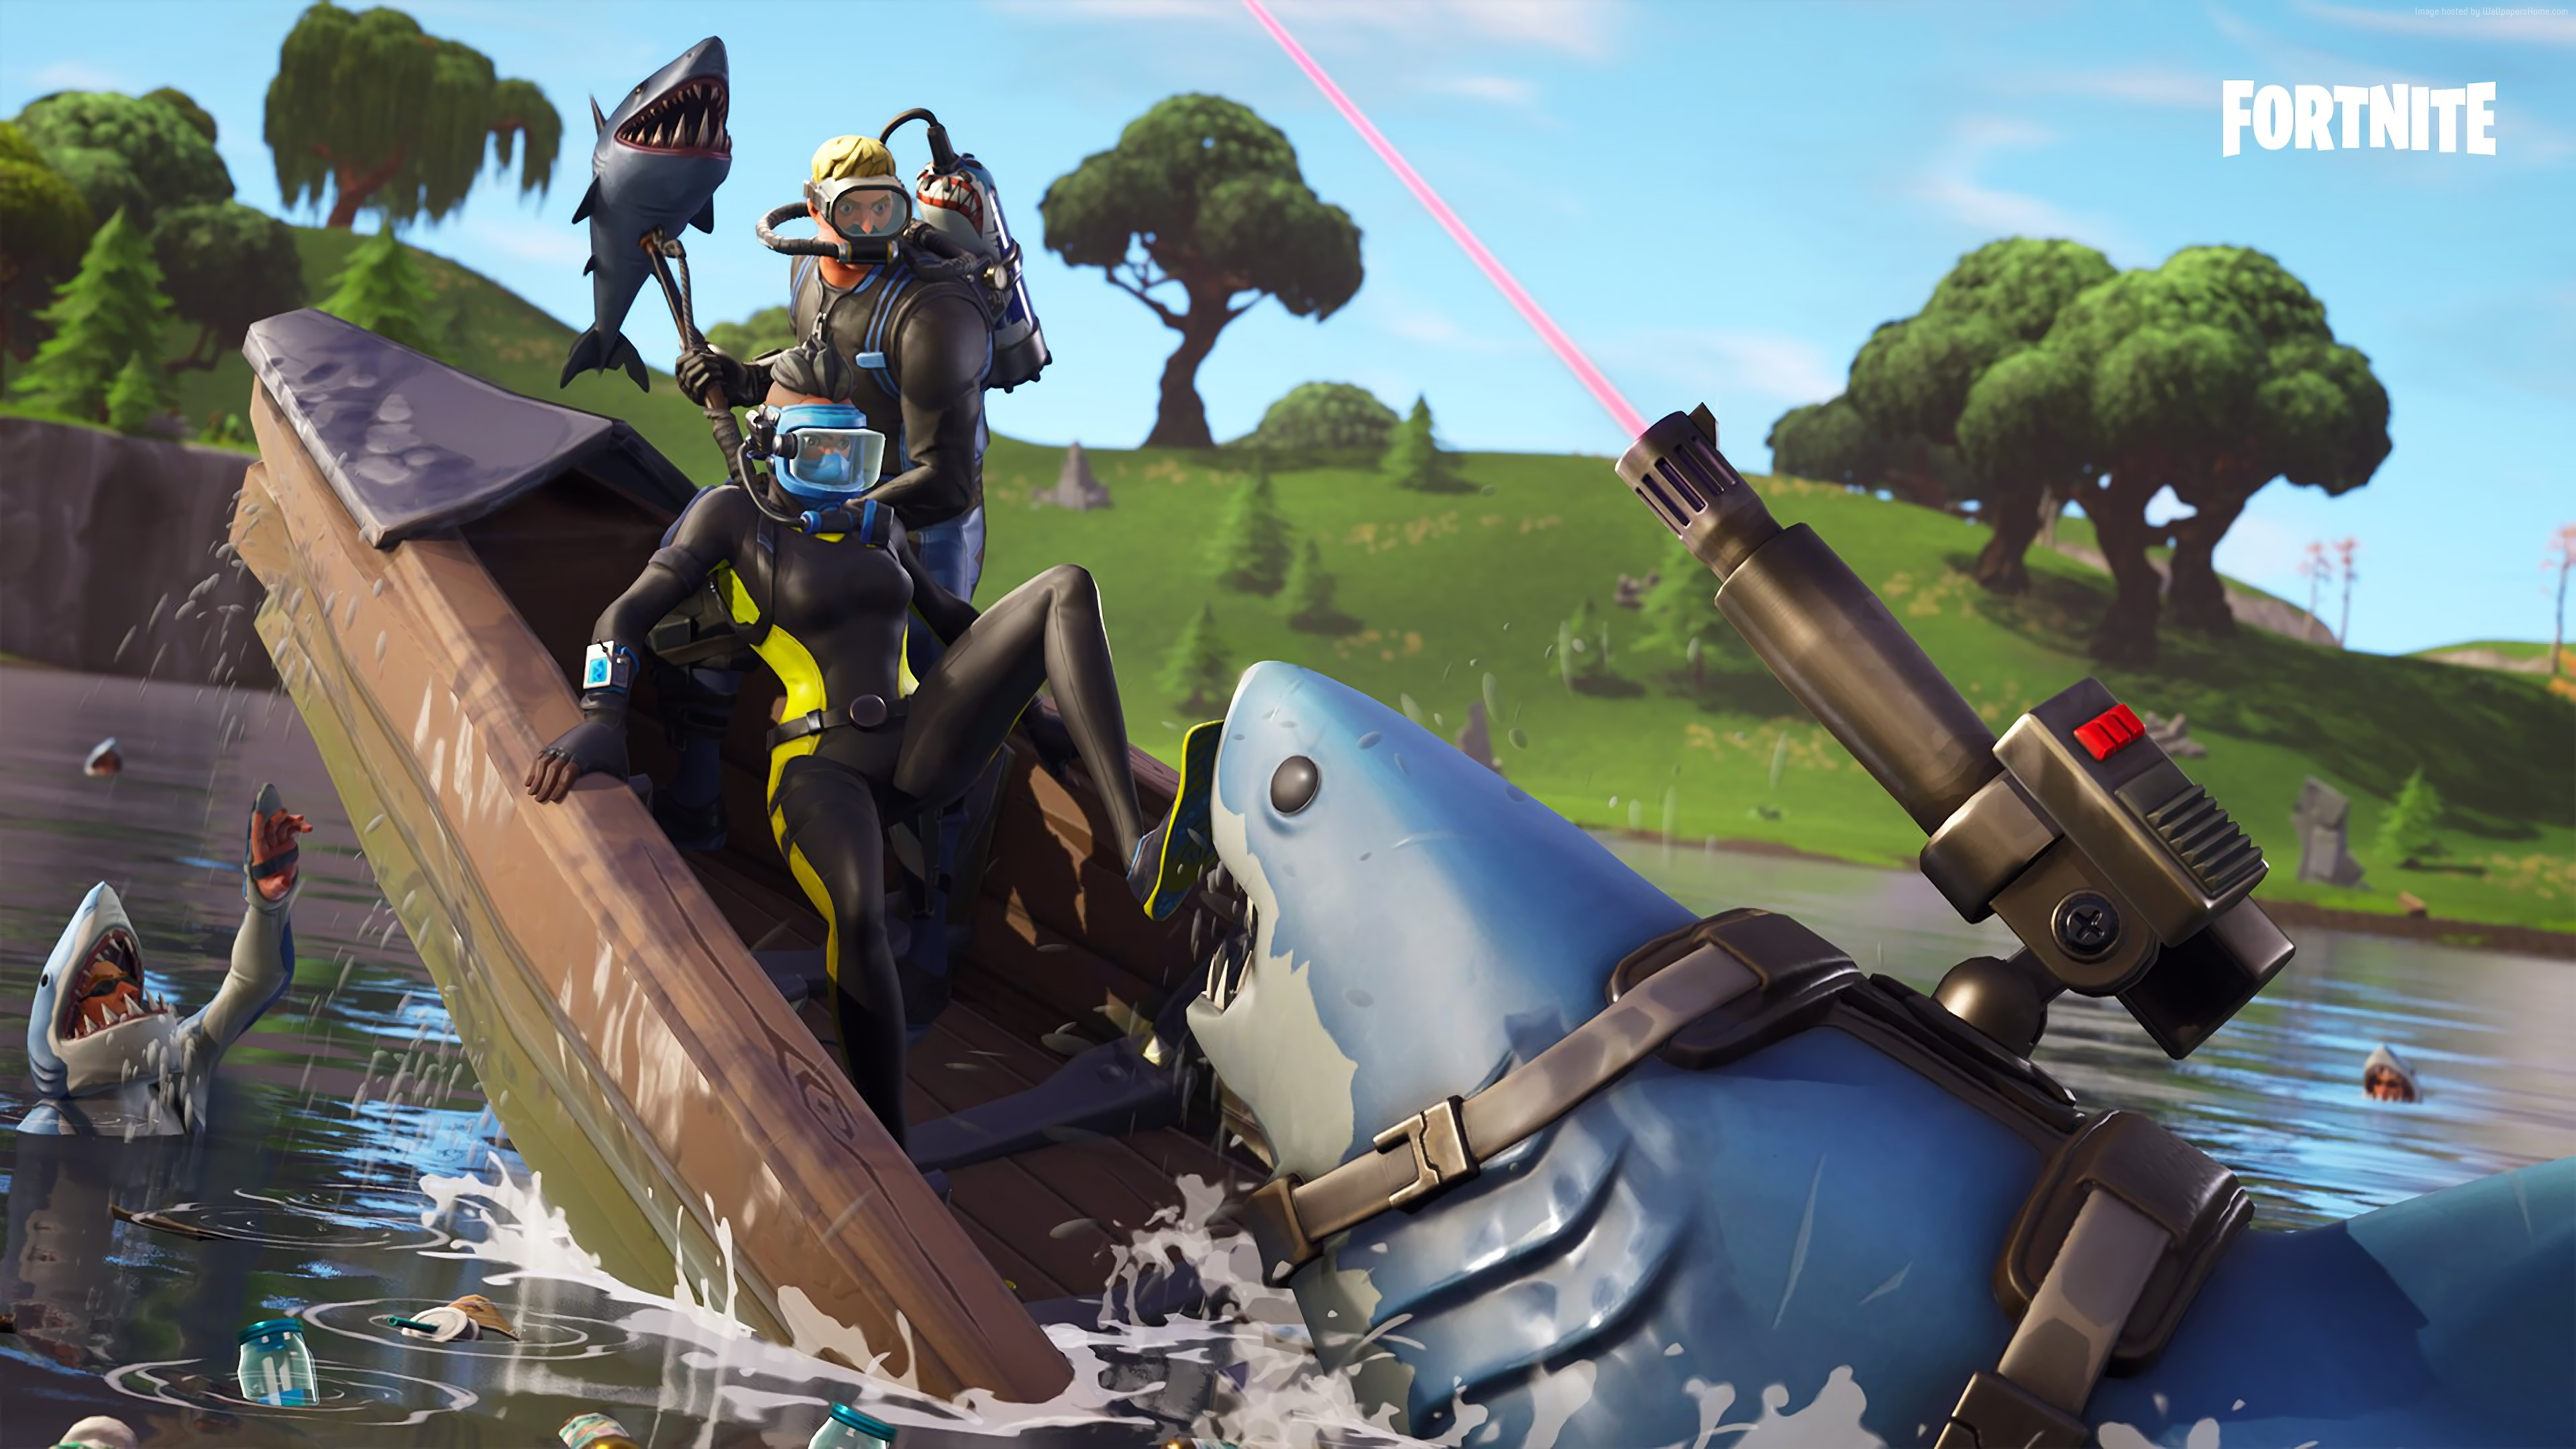 Wallpaper Fortnite, screenshot, 4K, Games